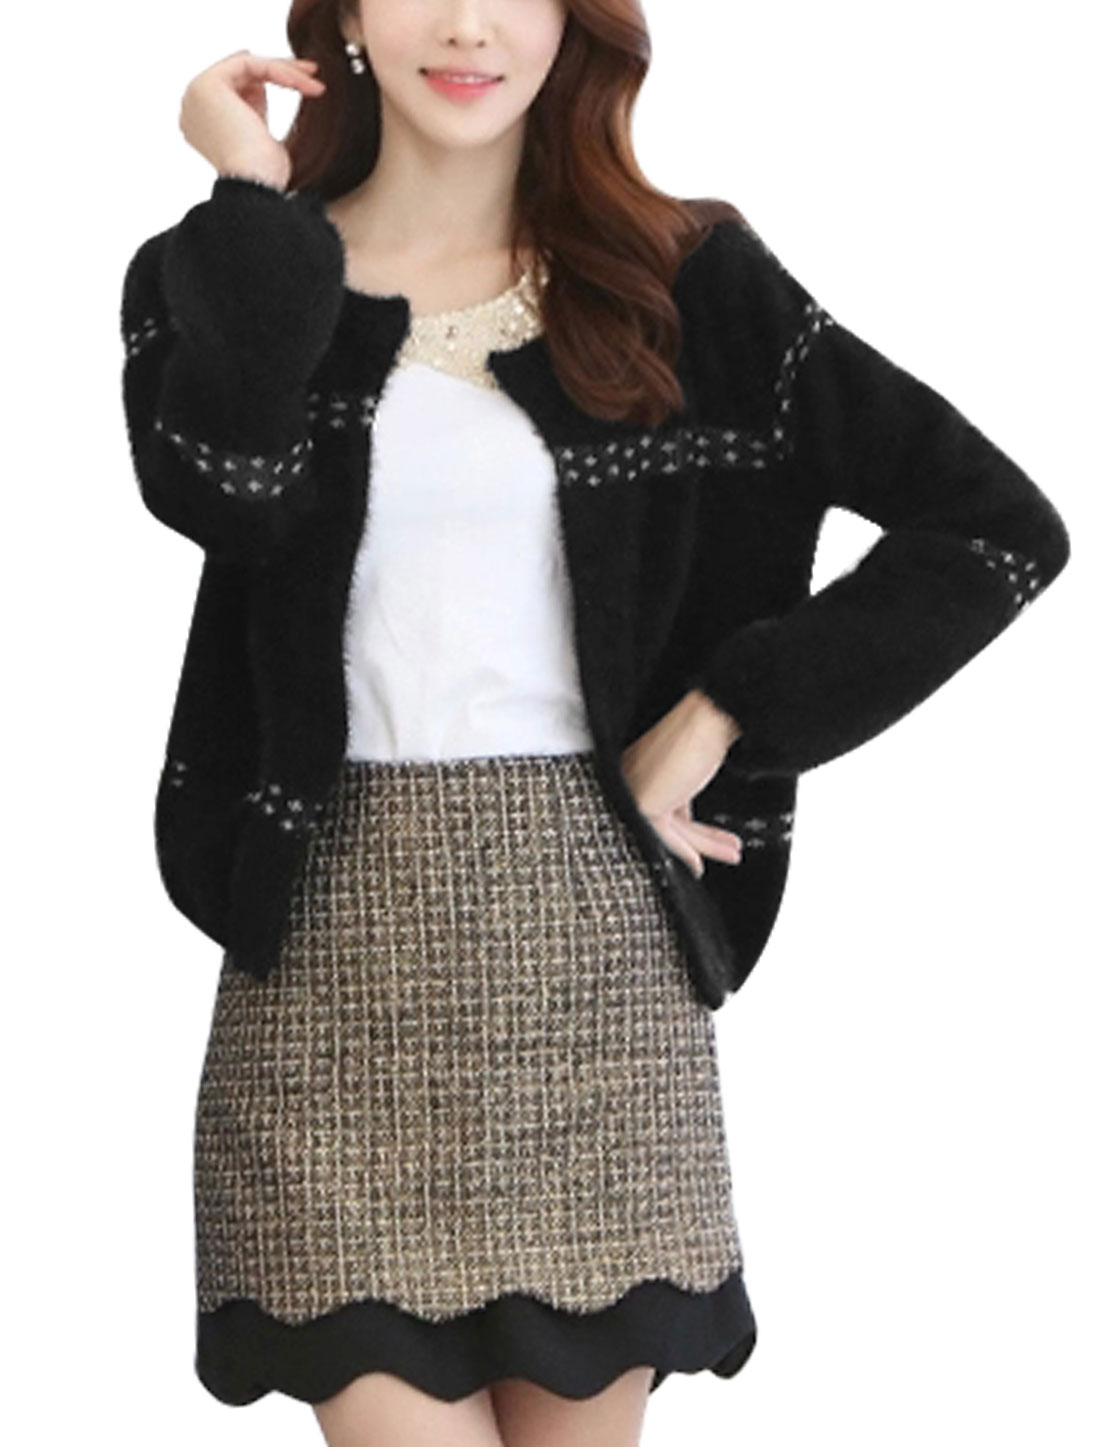 Lady Front Opening Knit Panel Casual Cardigan w Pearl Brooch Black S